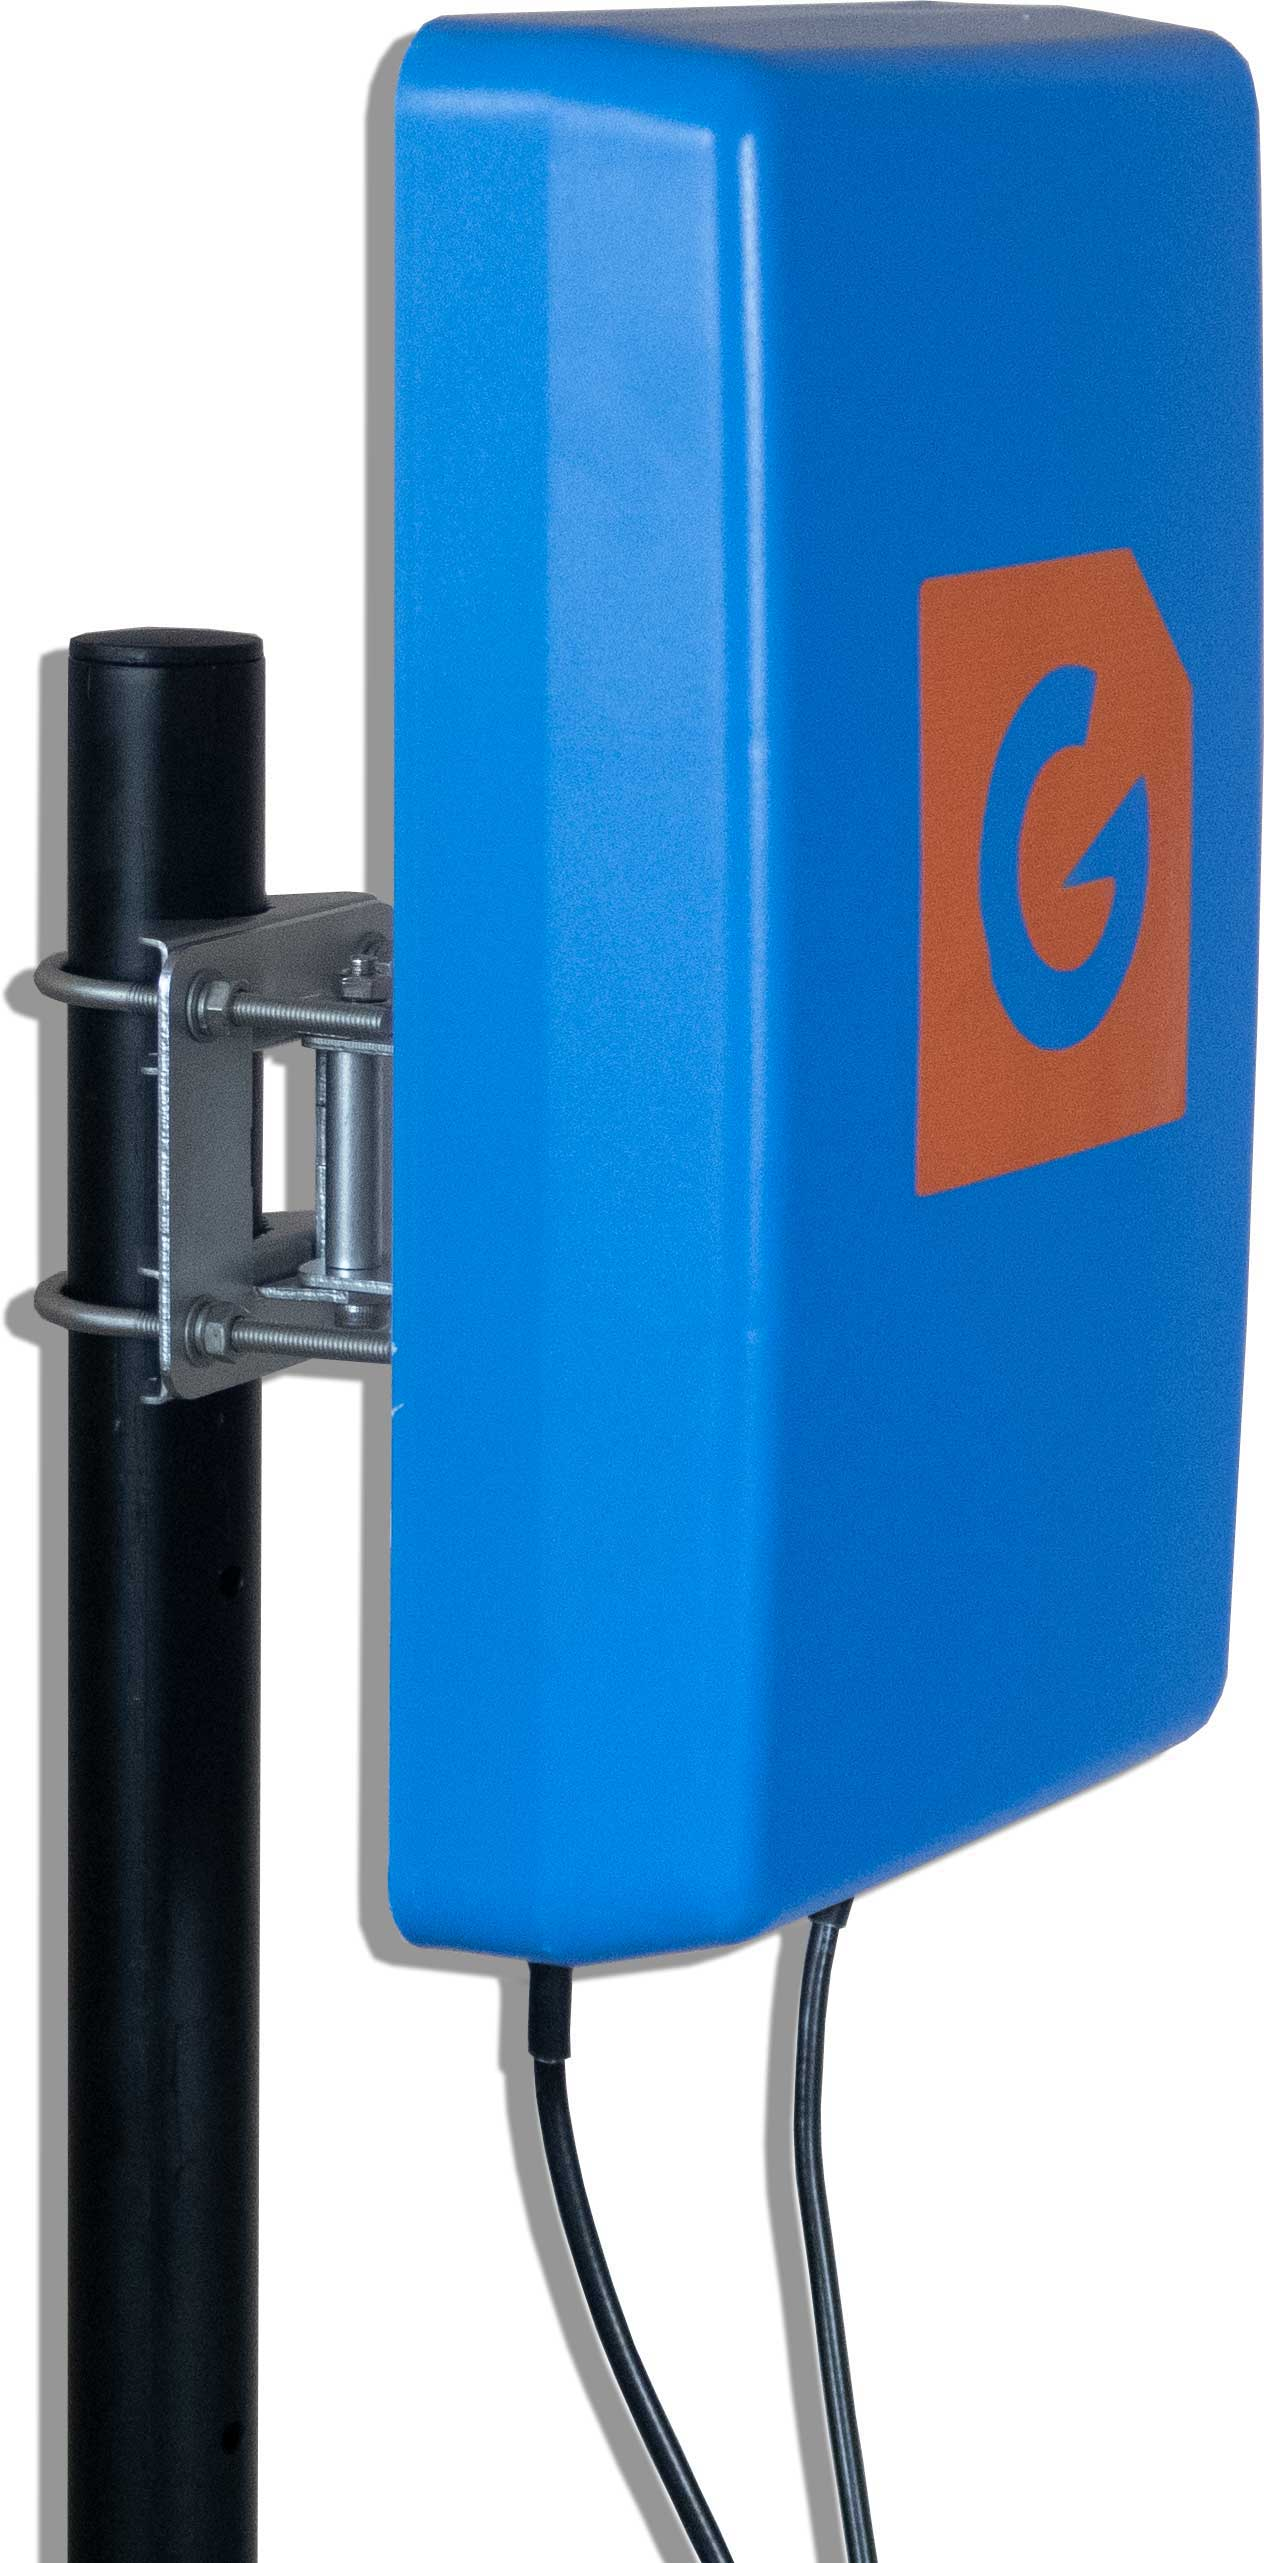 True Blue G Spotter MiMo 4G 5G Antenna Front